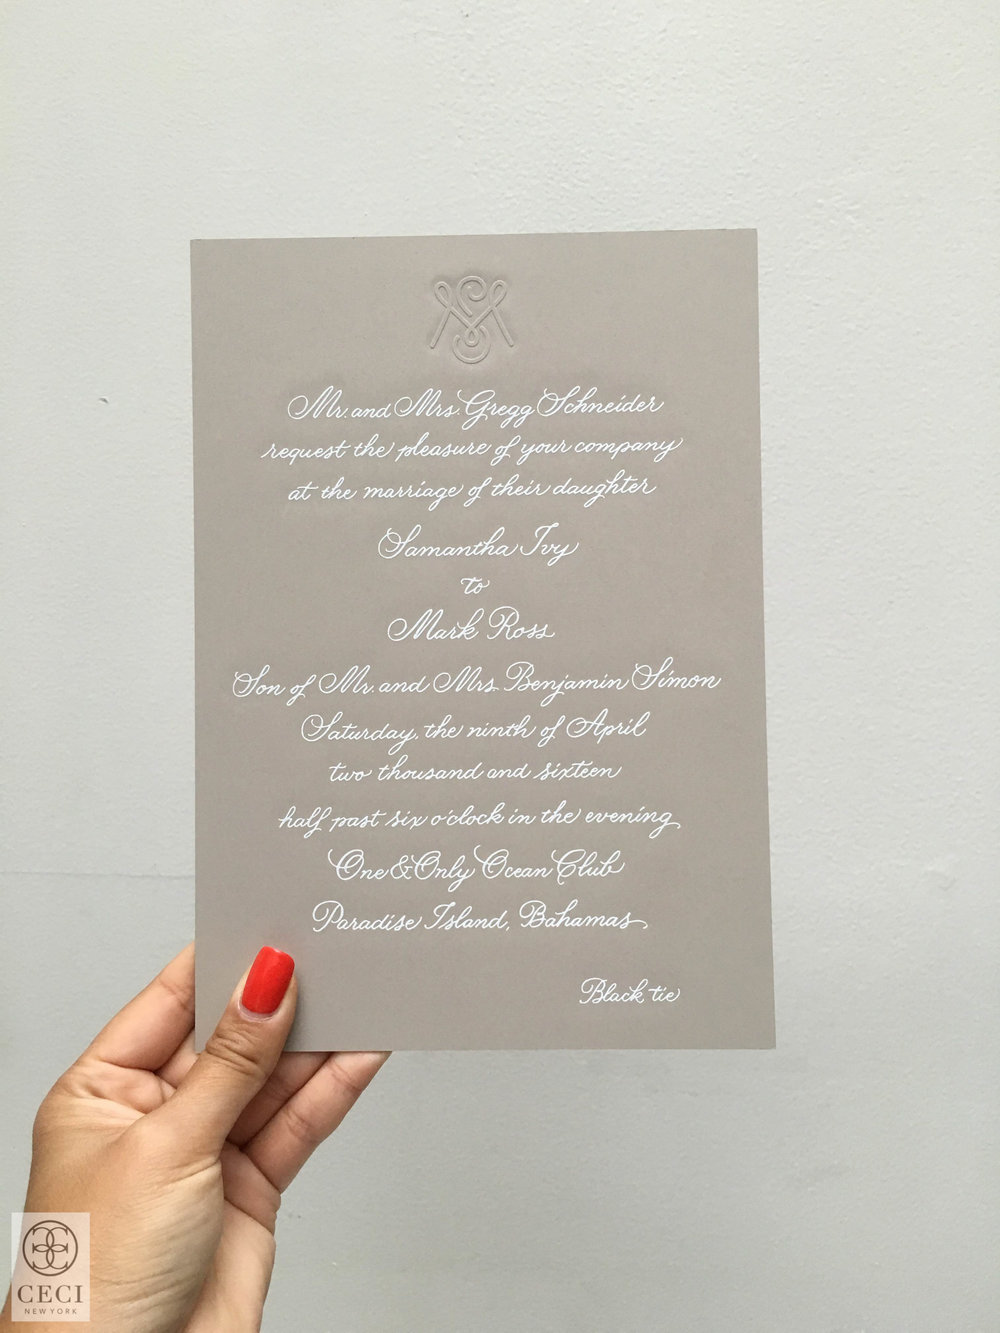 Ceci_New_York_Ceci_Style_Ceci_Johnson_Luxury_Lifestyle_Paradise_Island_Bahamas_Wedding_Engraved_Inspiration_Design_Custom_Couture_Personalized_Invitations_--10.jpg